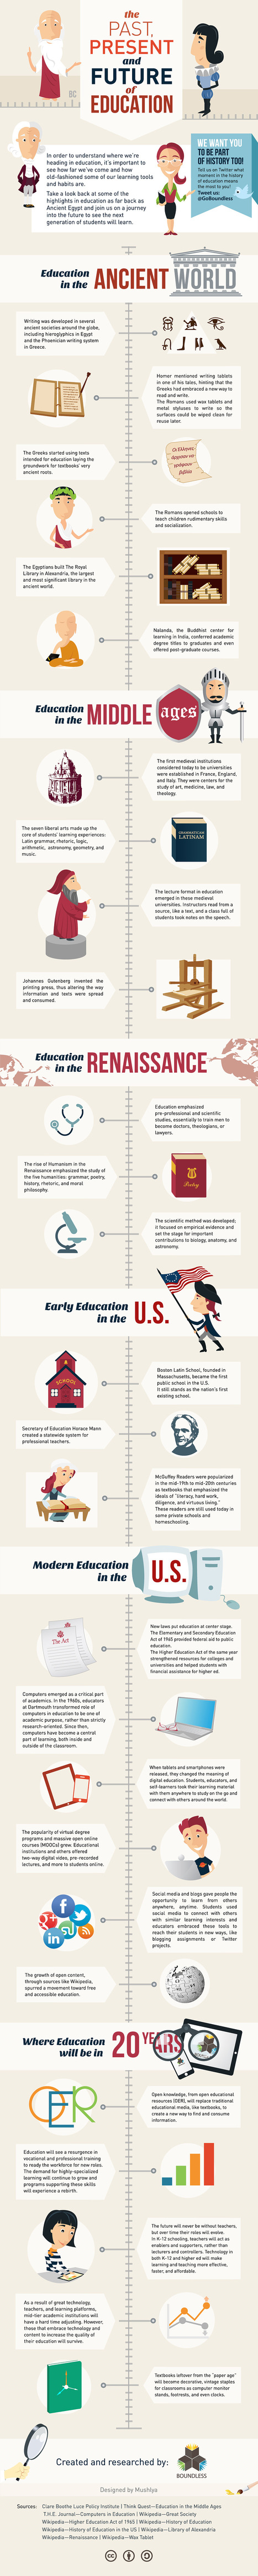 Infographic: The History of Education | #CentroTransmediático en Ágoras Digitales | Scoop.it